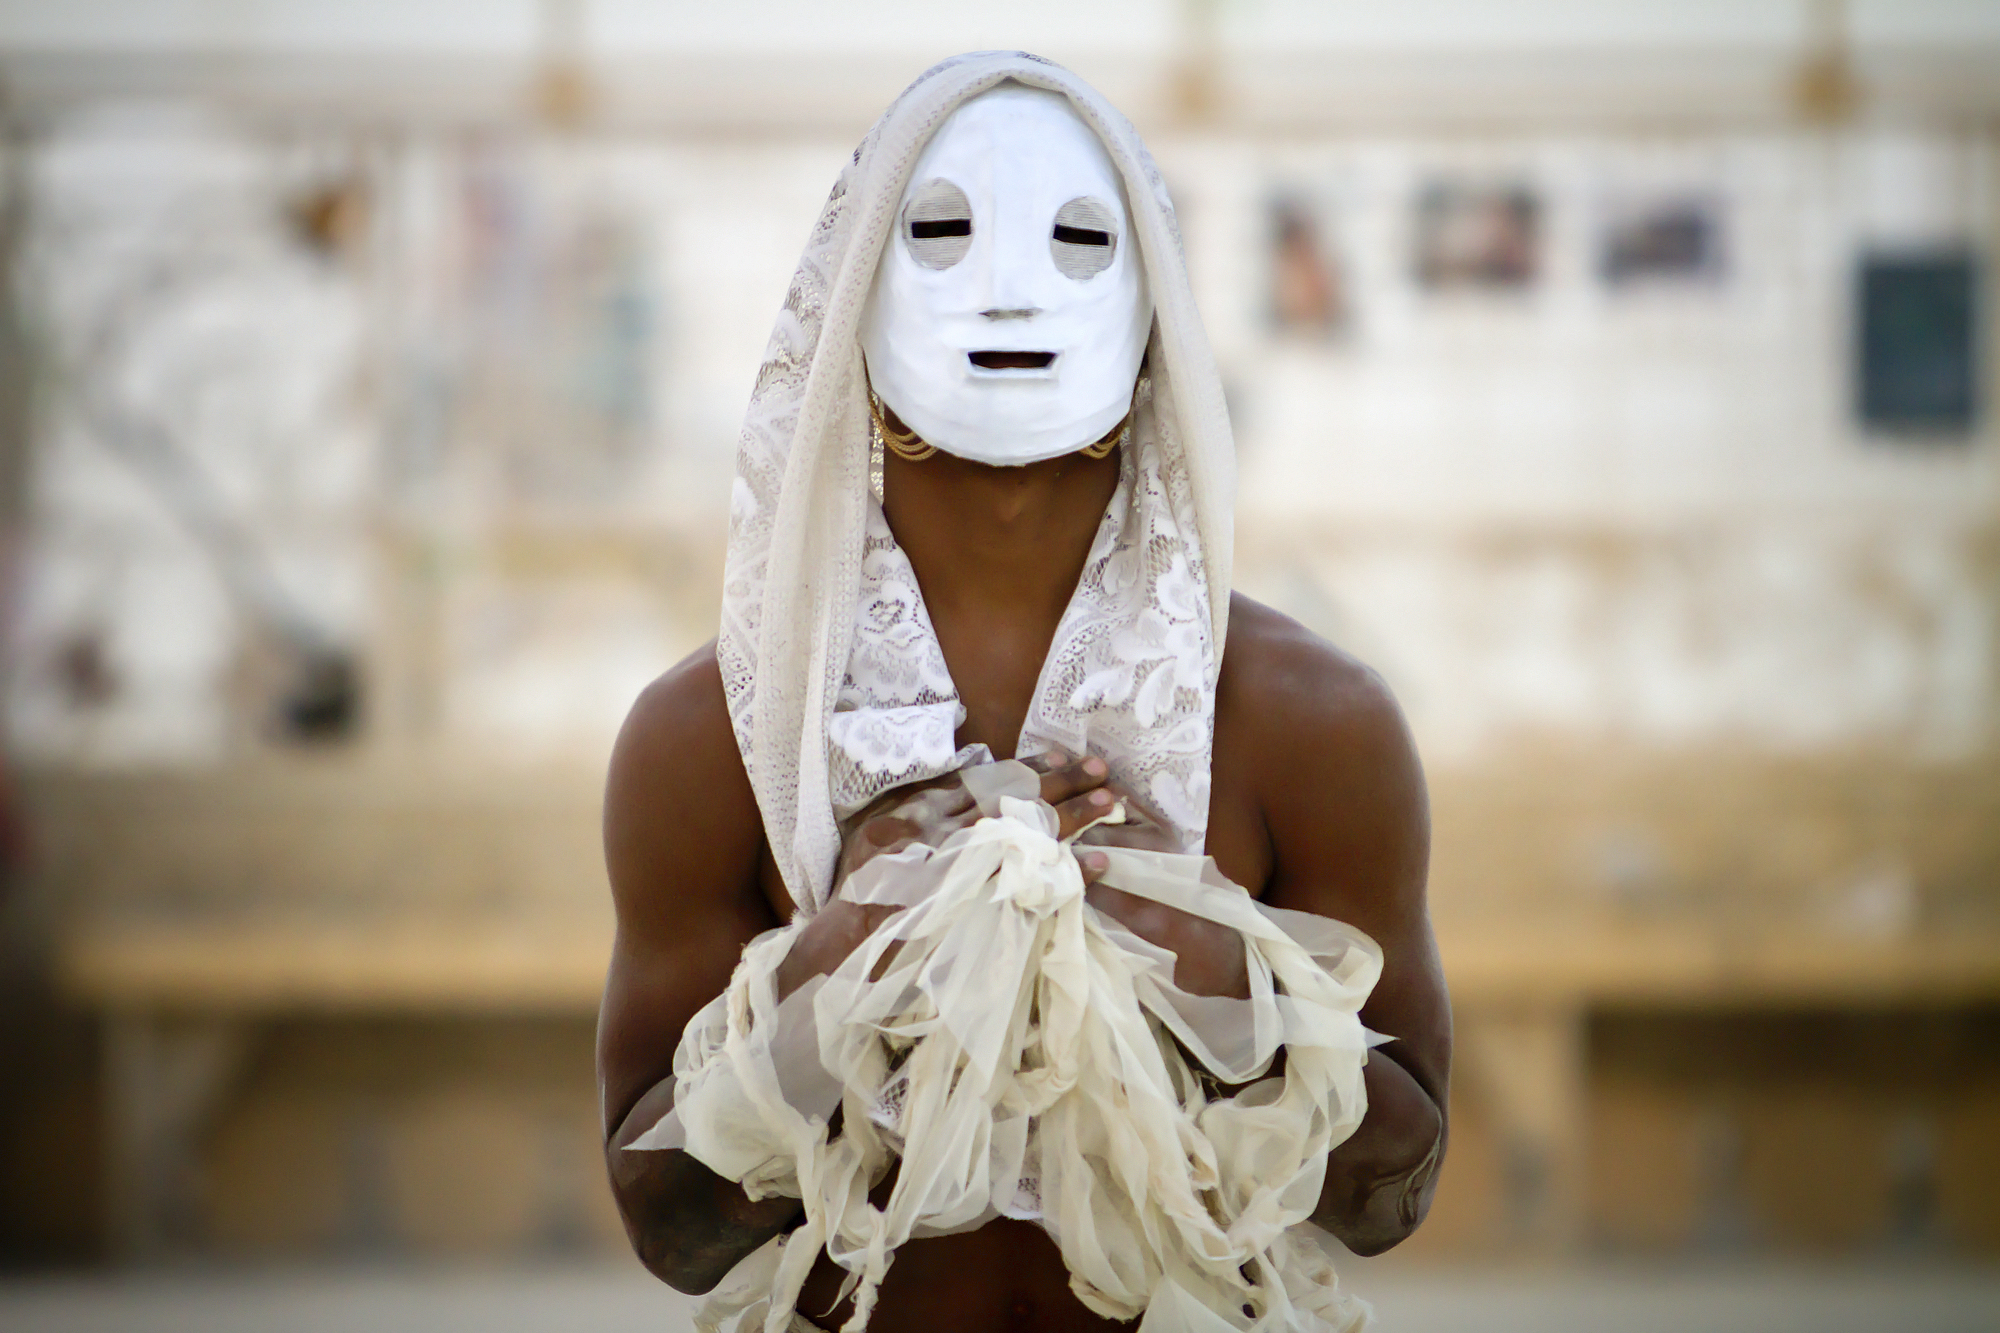 White Face mask performance, Black Rock City. 2012  photo © Scott London